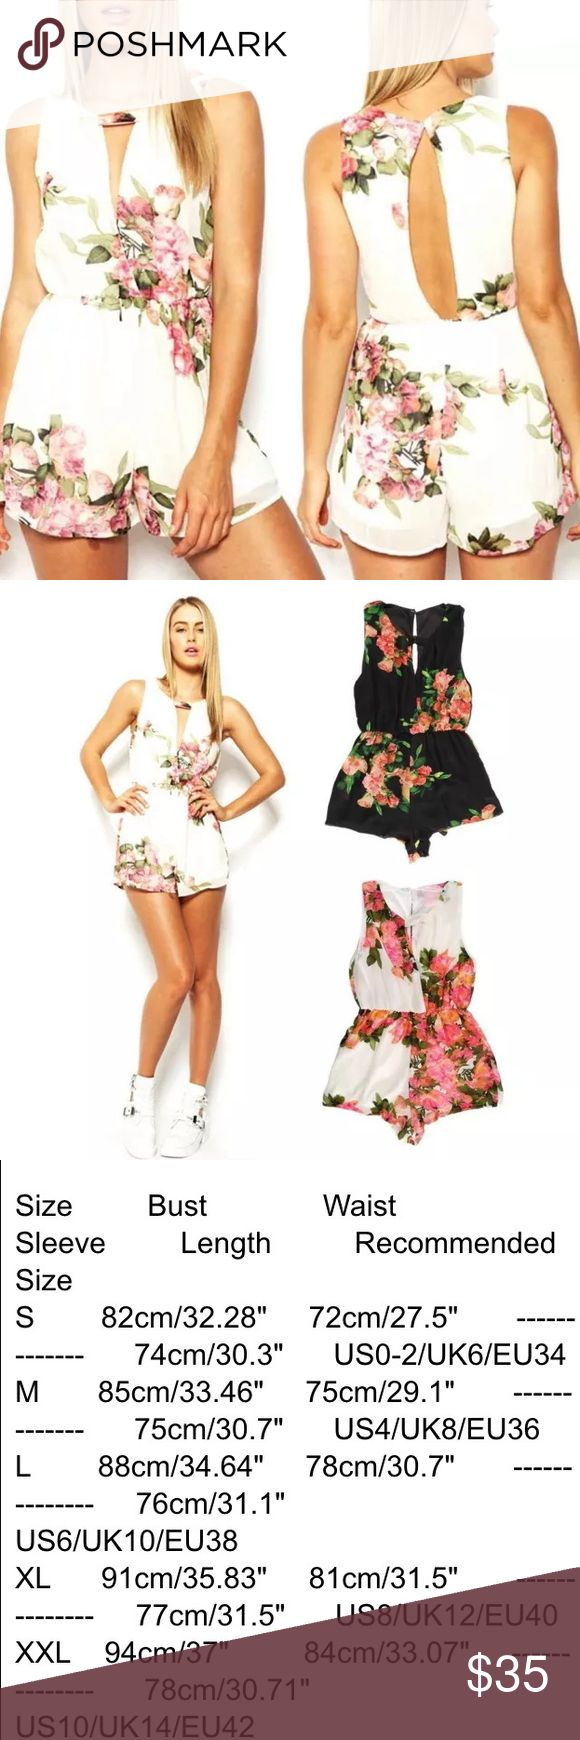 The Joan Crawford romper Gorgeous chiffon romper with lining inside. Has open back. Romper. Floral V Neck  Backless Jumpsuit Romper. Comes in black or white.                                                                    ⭐️please refer to size chart when ordering.        ⭐️please let me know when ordering if you would like it in black or white Pants Jumpsuits & Rompers